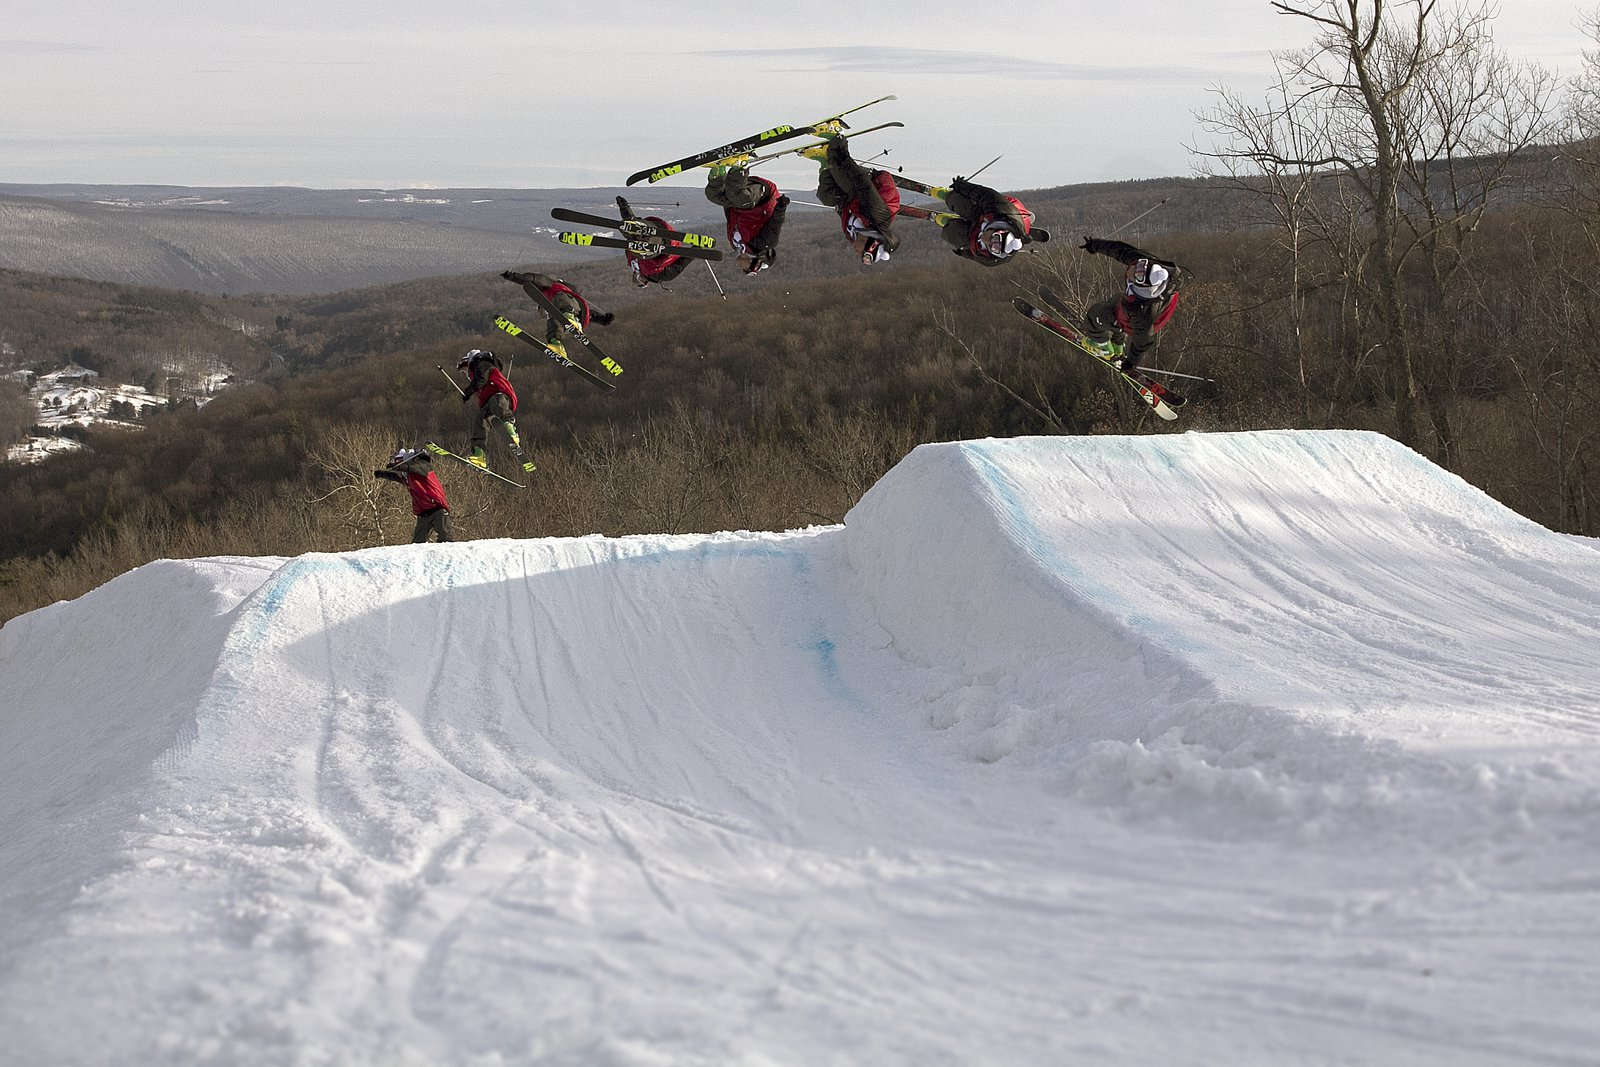 Underflip off the Booter